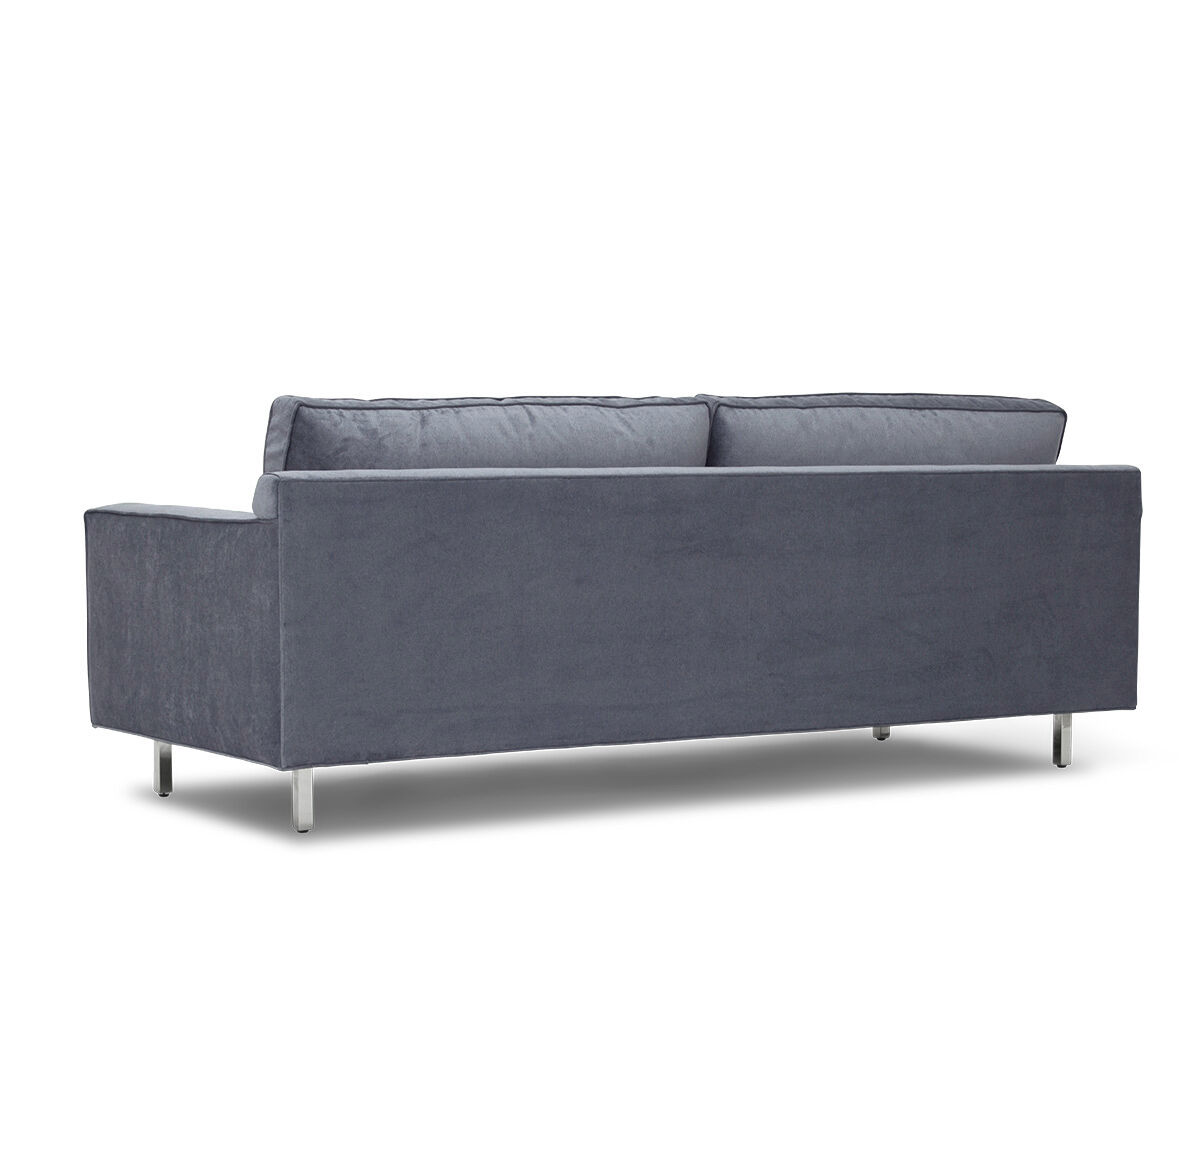 Lovely HUNTER STUDIO SOFA, , Hi Res